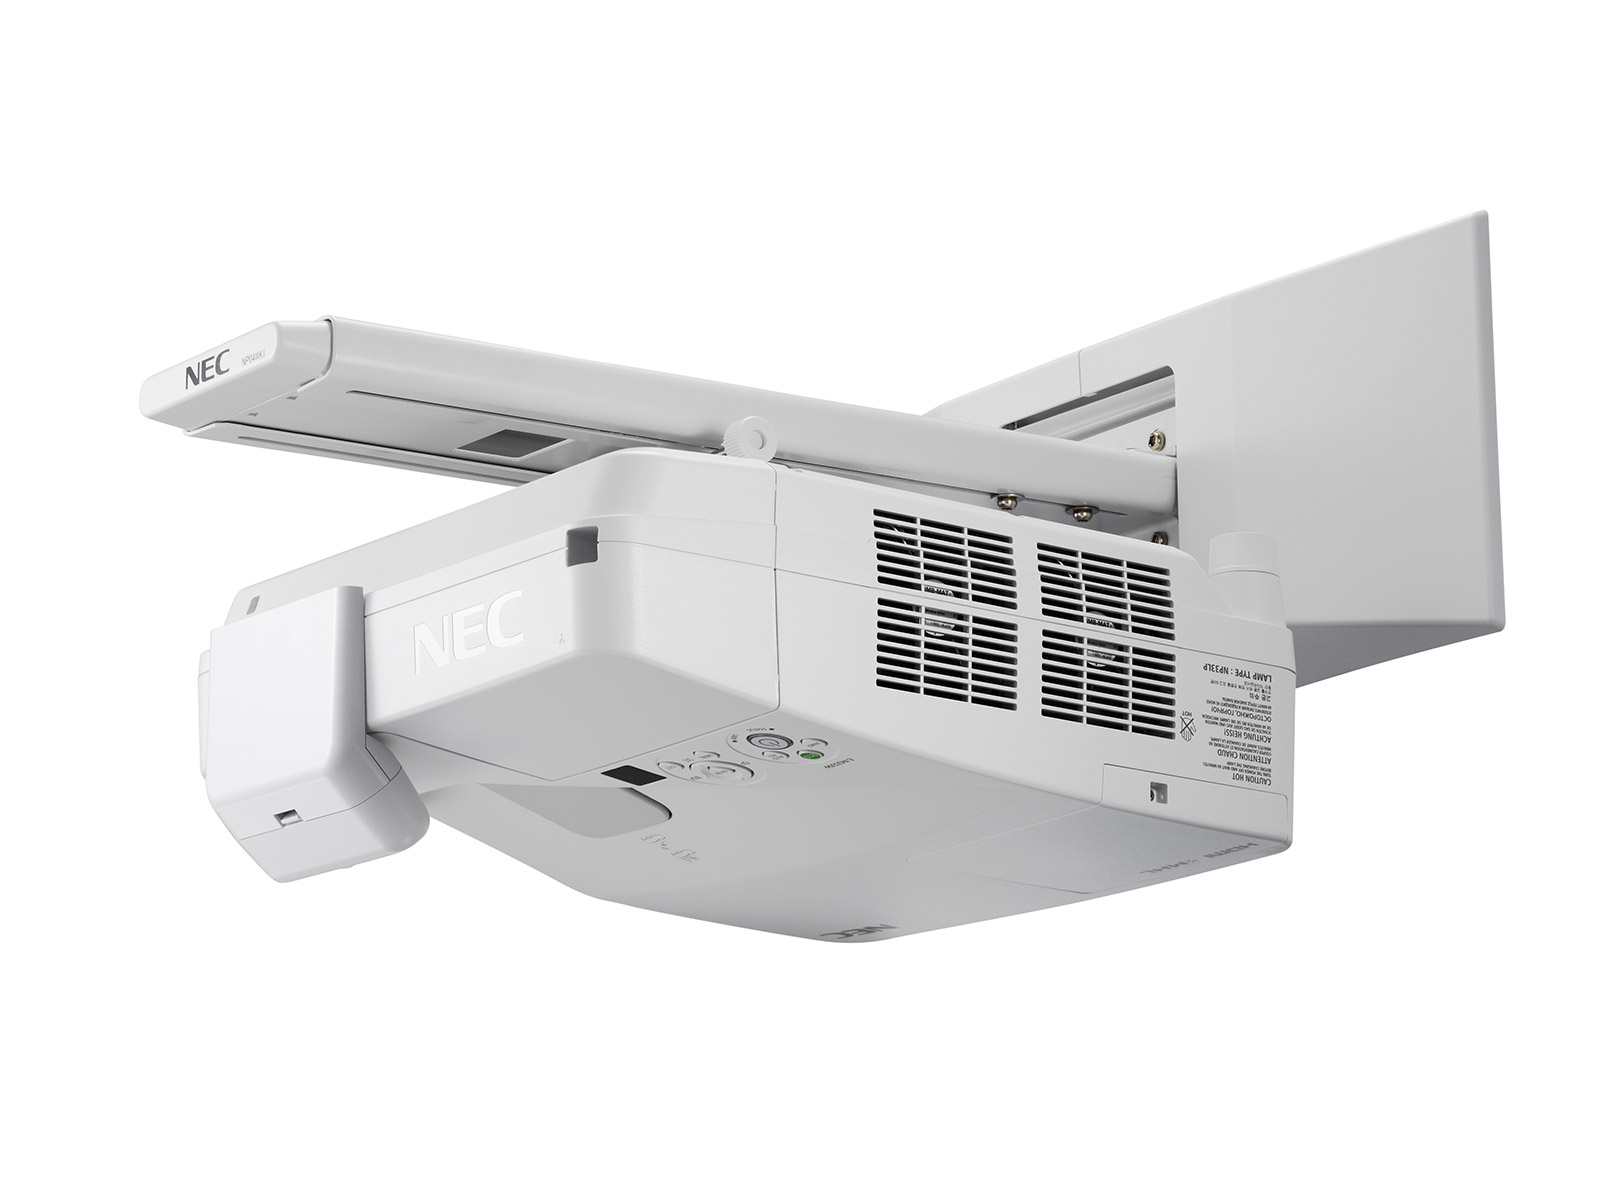 NEC 60004208 UM301WI WALL-MOUNTED PROJECTOR 3000ANSI LUMENS 3LCD WXGA (1280X800) WHITE DATA